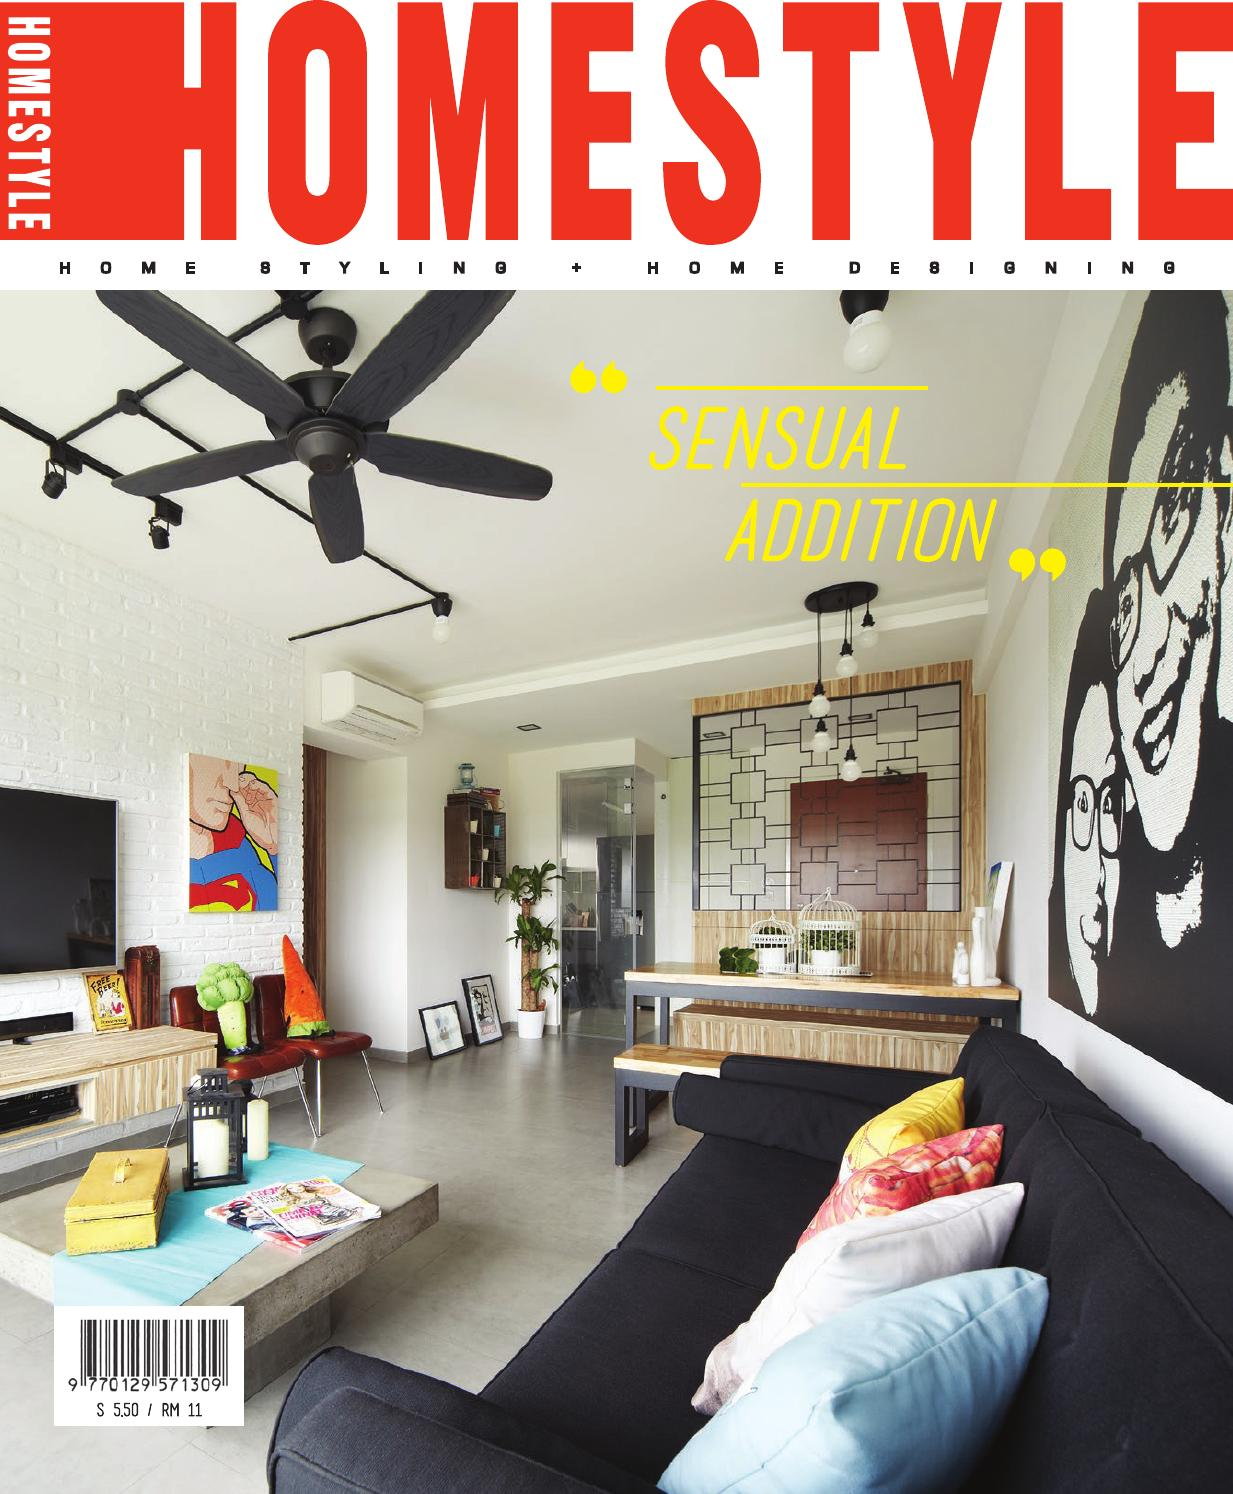 homestyle magazine v25n4 by homebuyers magazine issuu. Black Bedroom Furniture Sets. Home Design Ideas